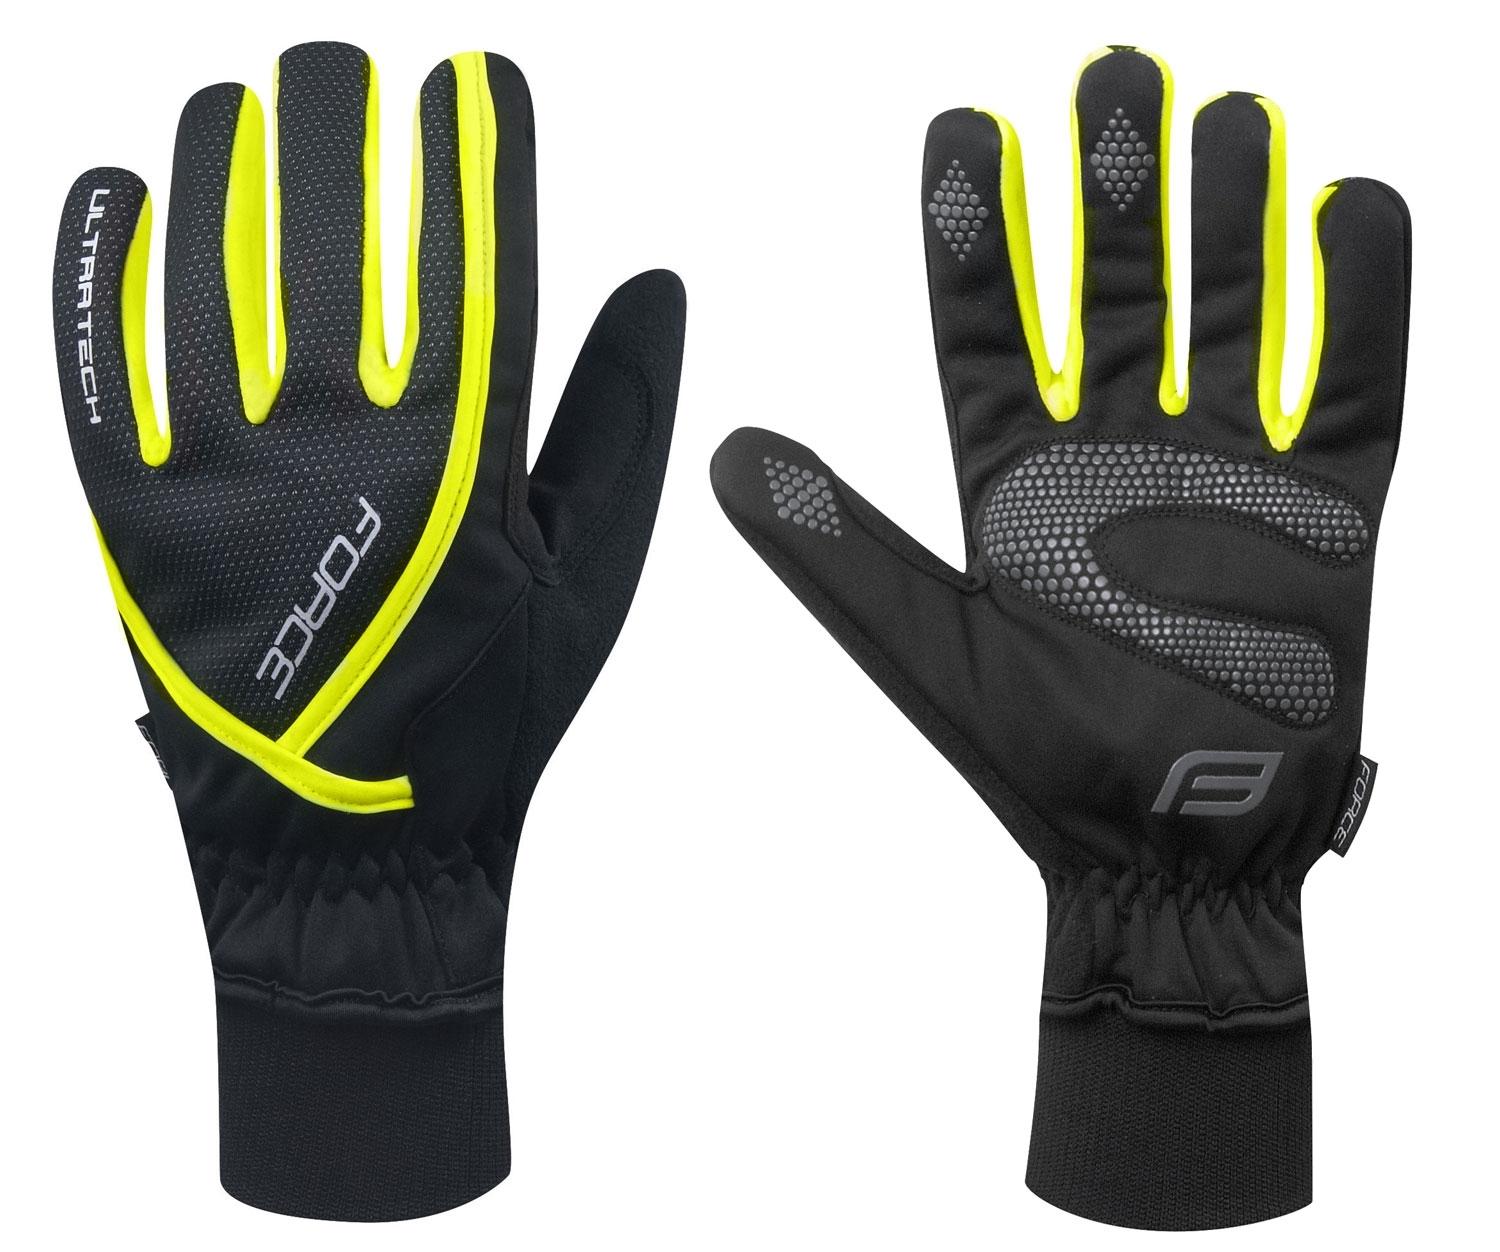 rukavice zimní FORCE ULTRA TECH, fluo S